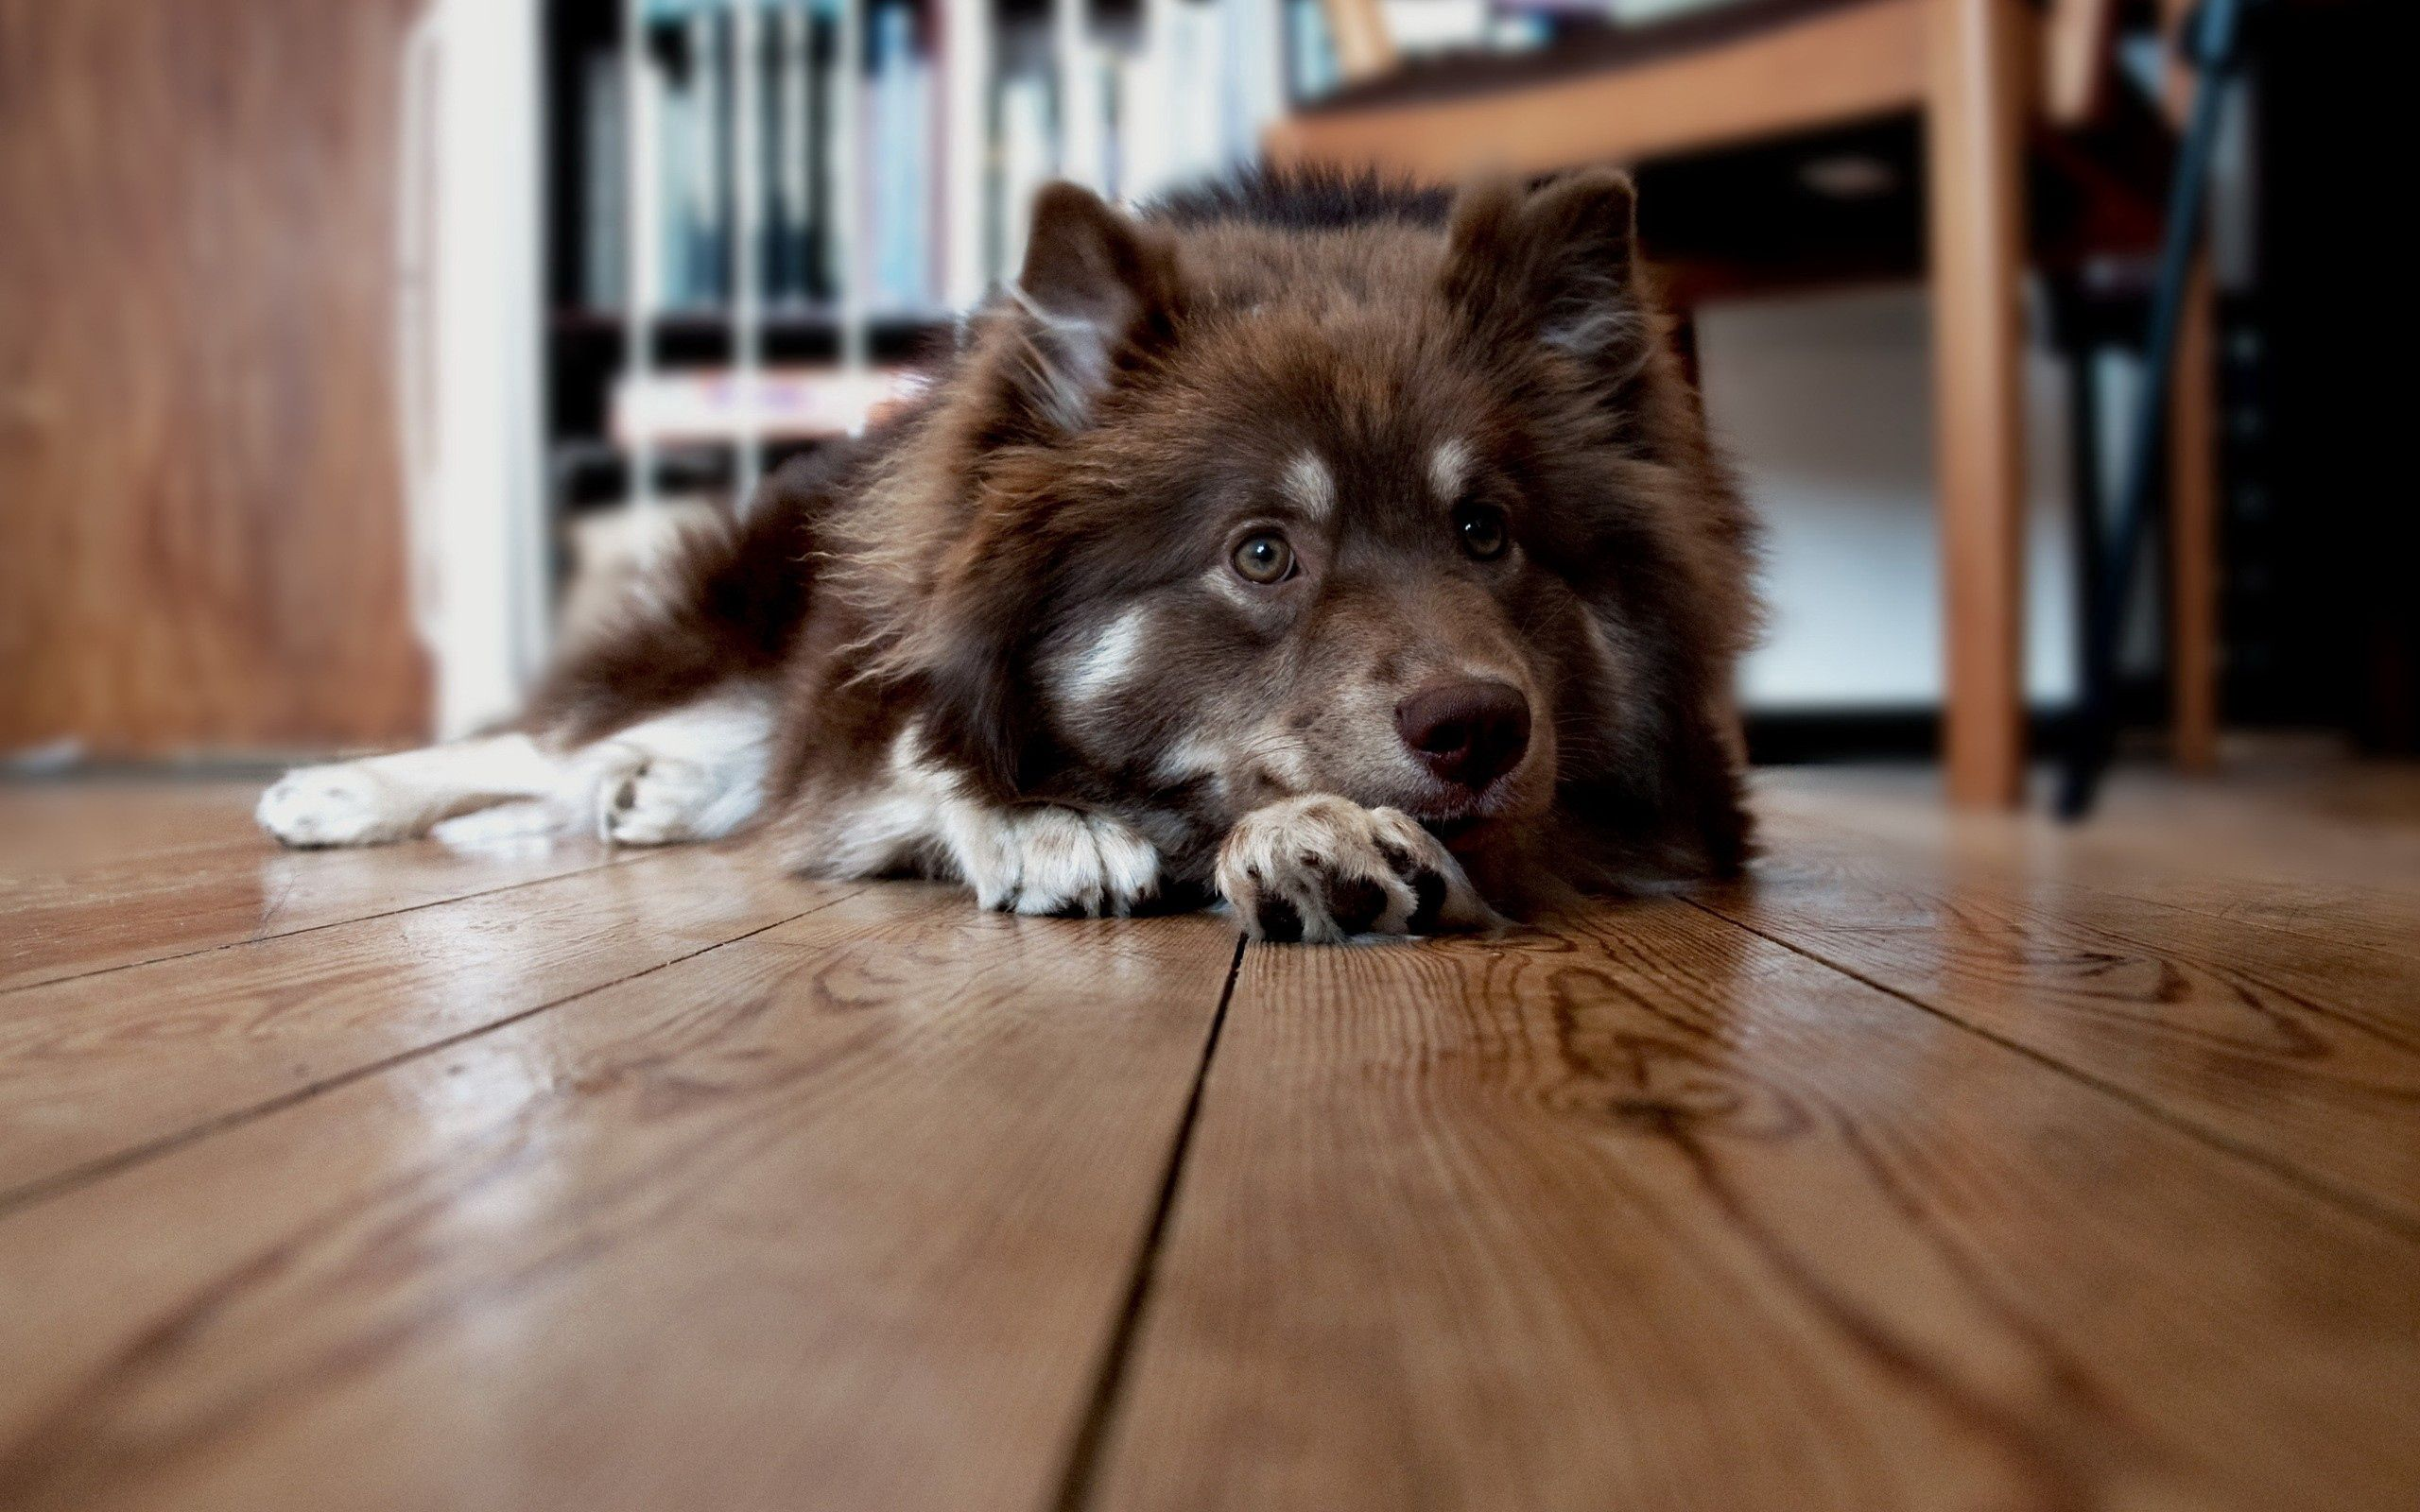 80658 download wallpaper Animals, Dog, Muzzle, Floors, To Lie Down, Lie, Fluffy, Expectation, Waiting screensavers and pictures for free